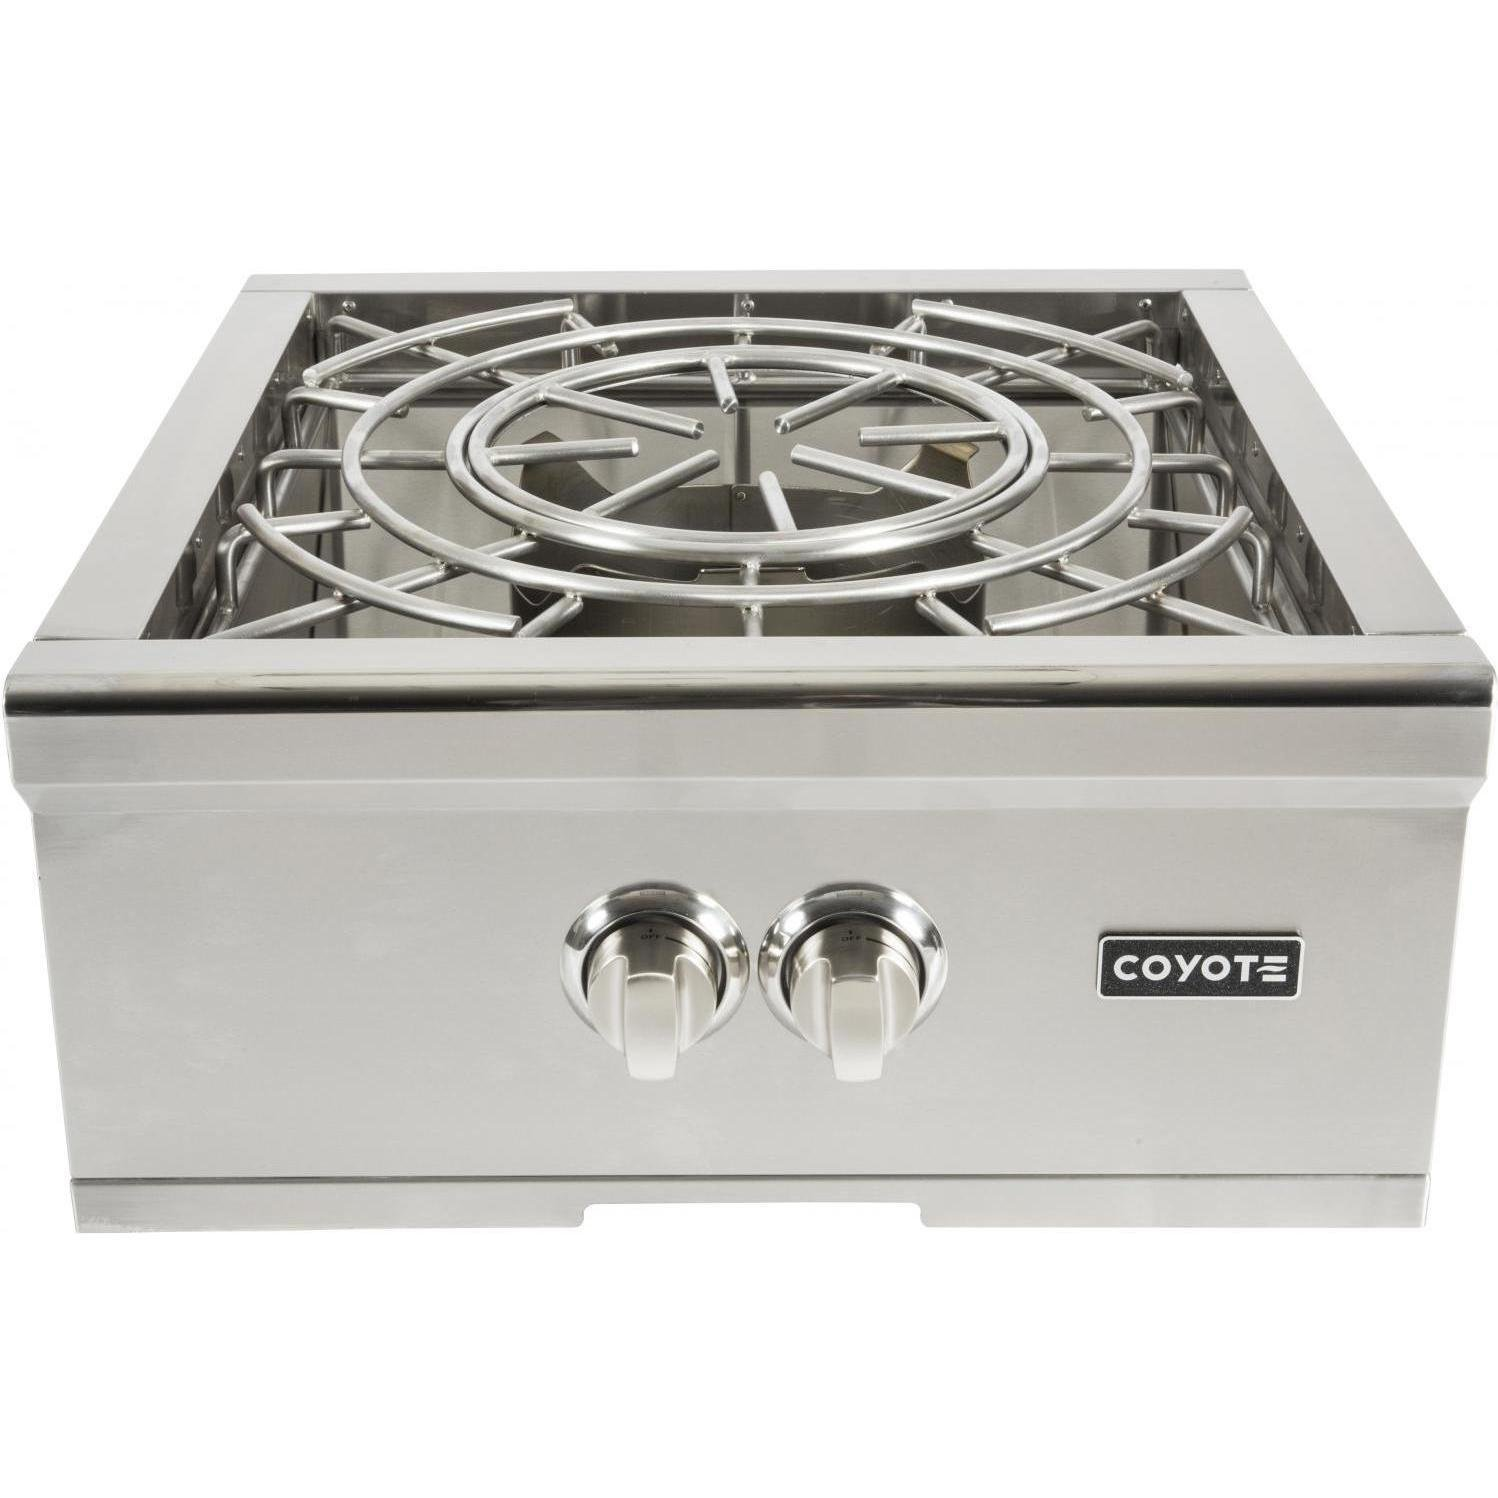 Coyote 24 Inch Built-in Power Burner, Propane Gas- C1PBLP